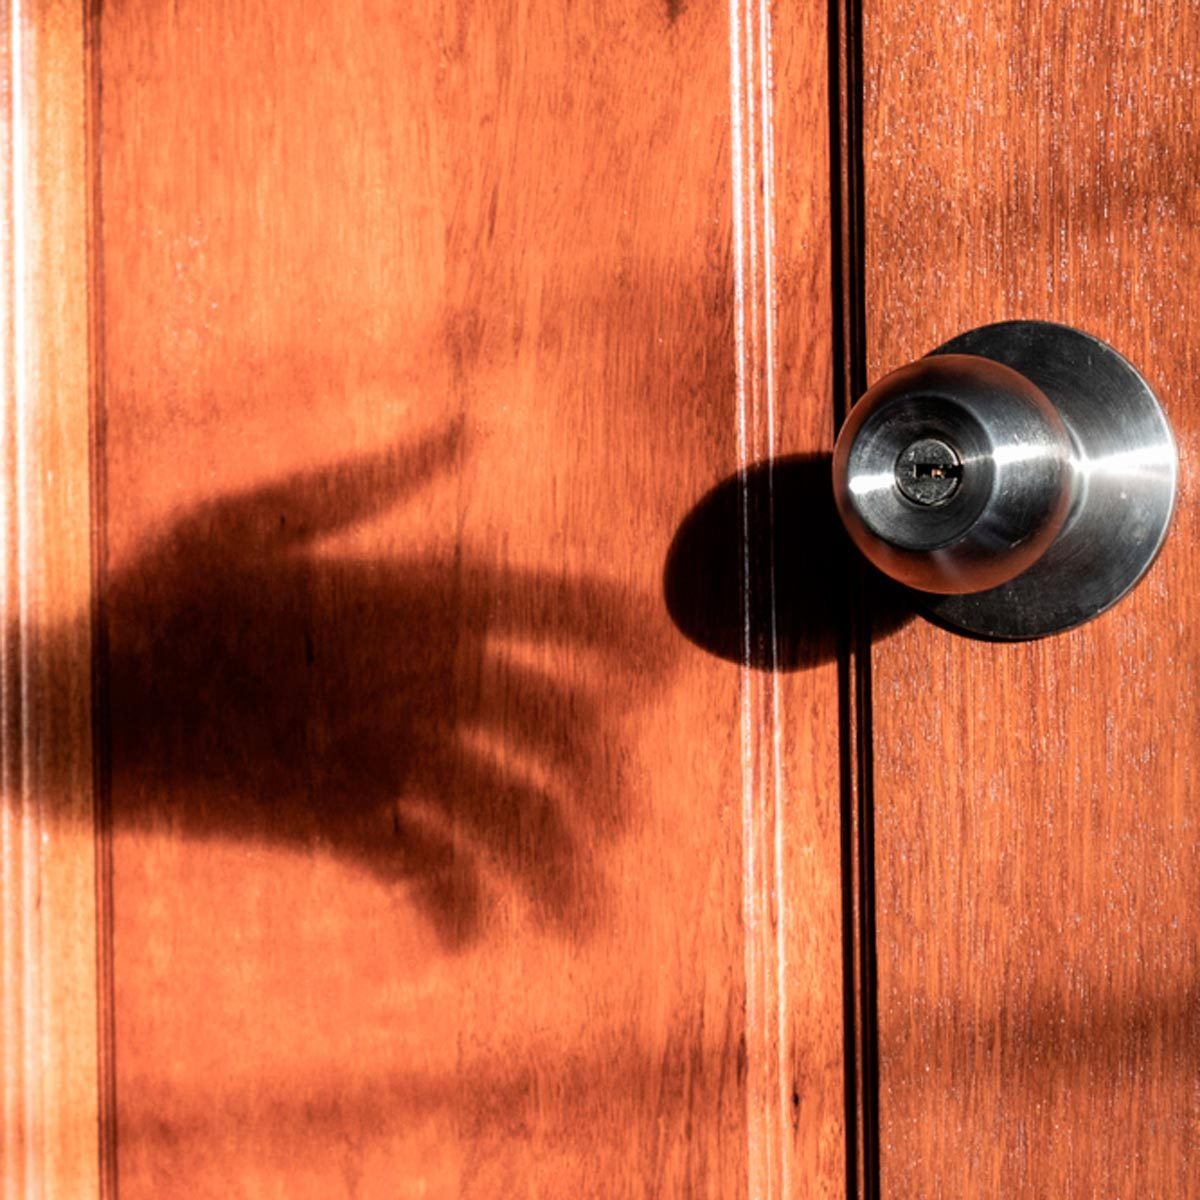 door creepy shadow is your house haunted